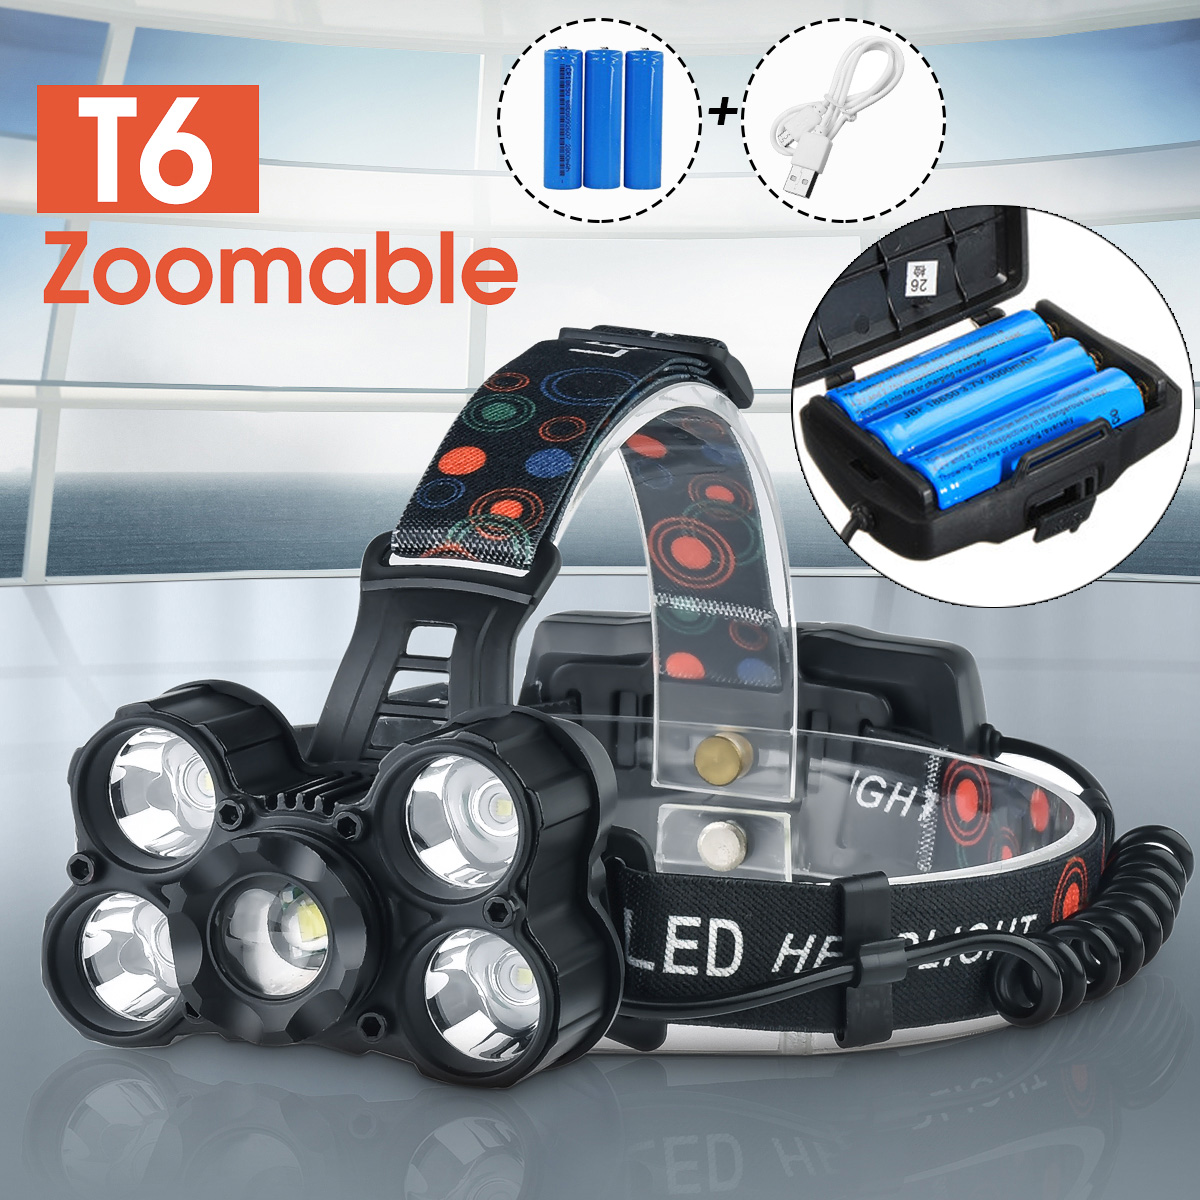 60000lm LED Headlamp 5 T6 Fishing Headlight Bike Flashlight Torch Forehead Zoom Head Lamp Light 3*18650 Rechargeable Battery rechargeable cree xml t6 2000lumens zoom head lamp torch led headlamp 18650 battery headlight flashlight lantern night fishing